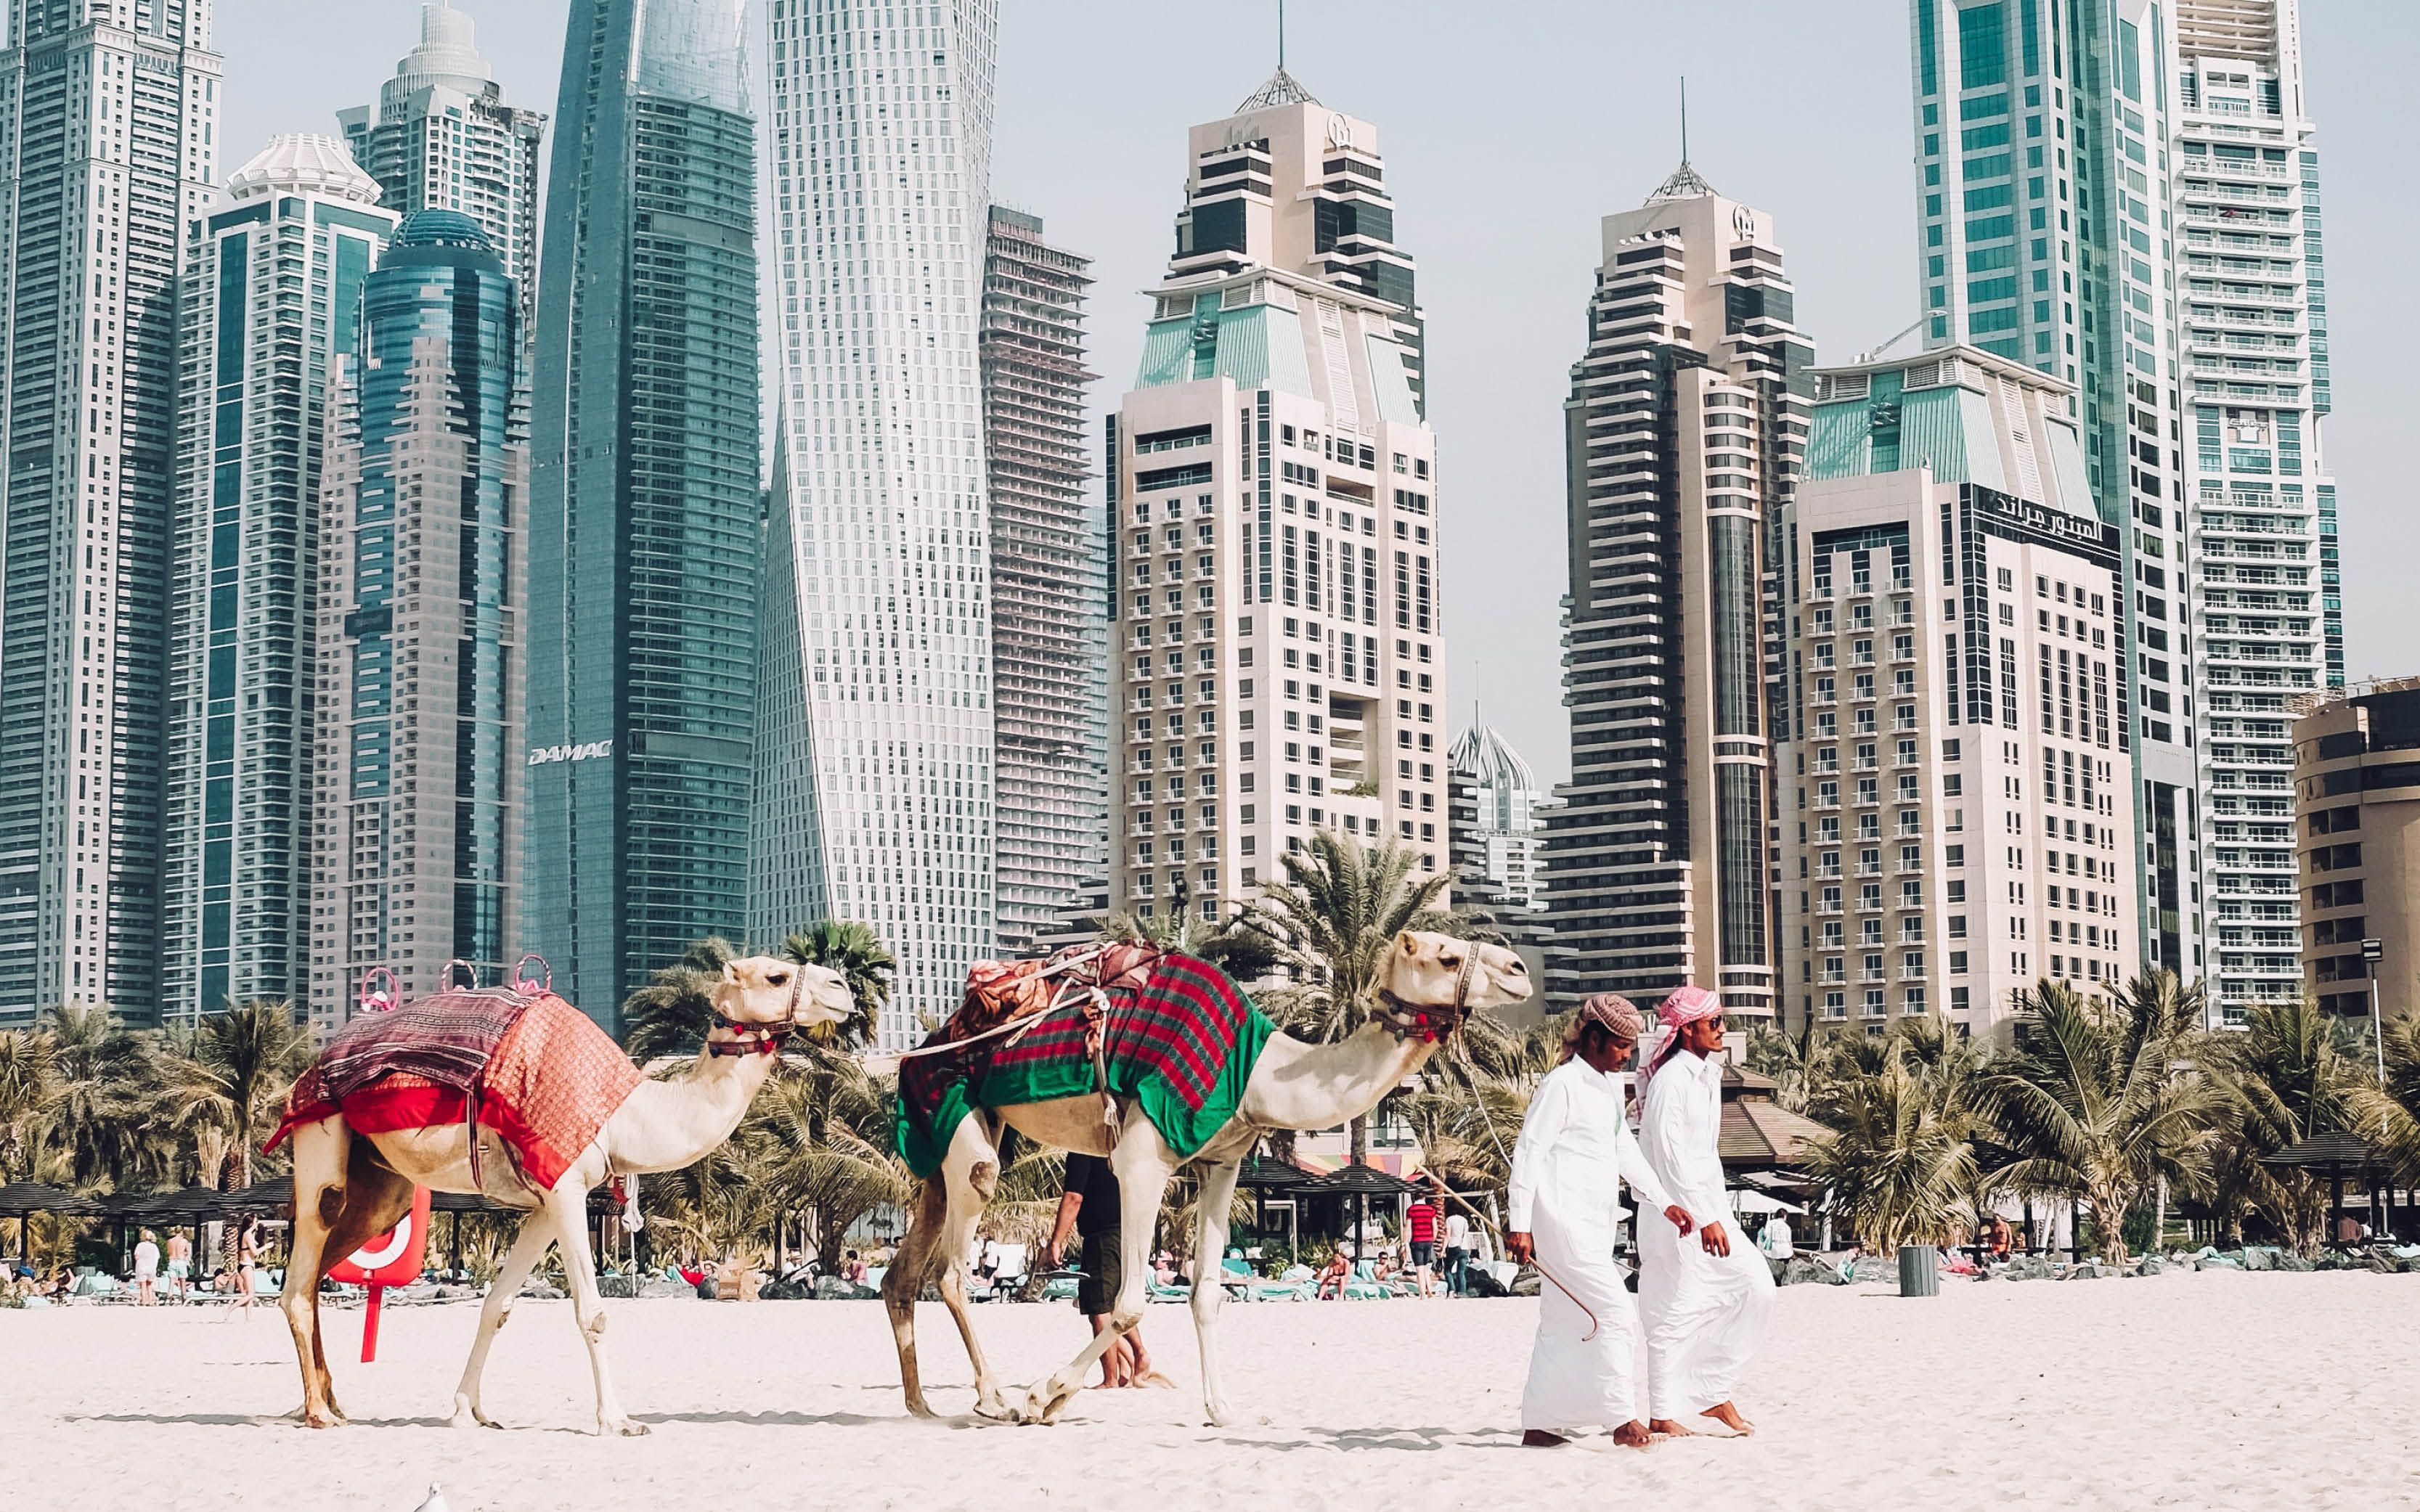 Dubai modern and traditional - last-minute holiday